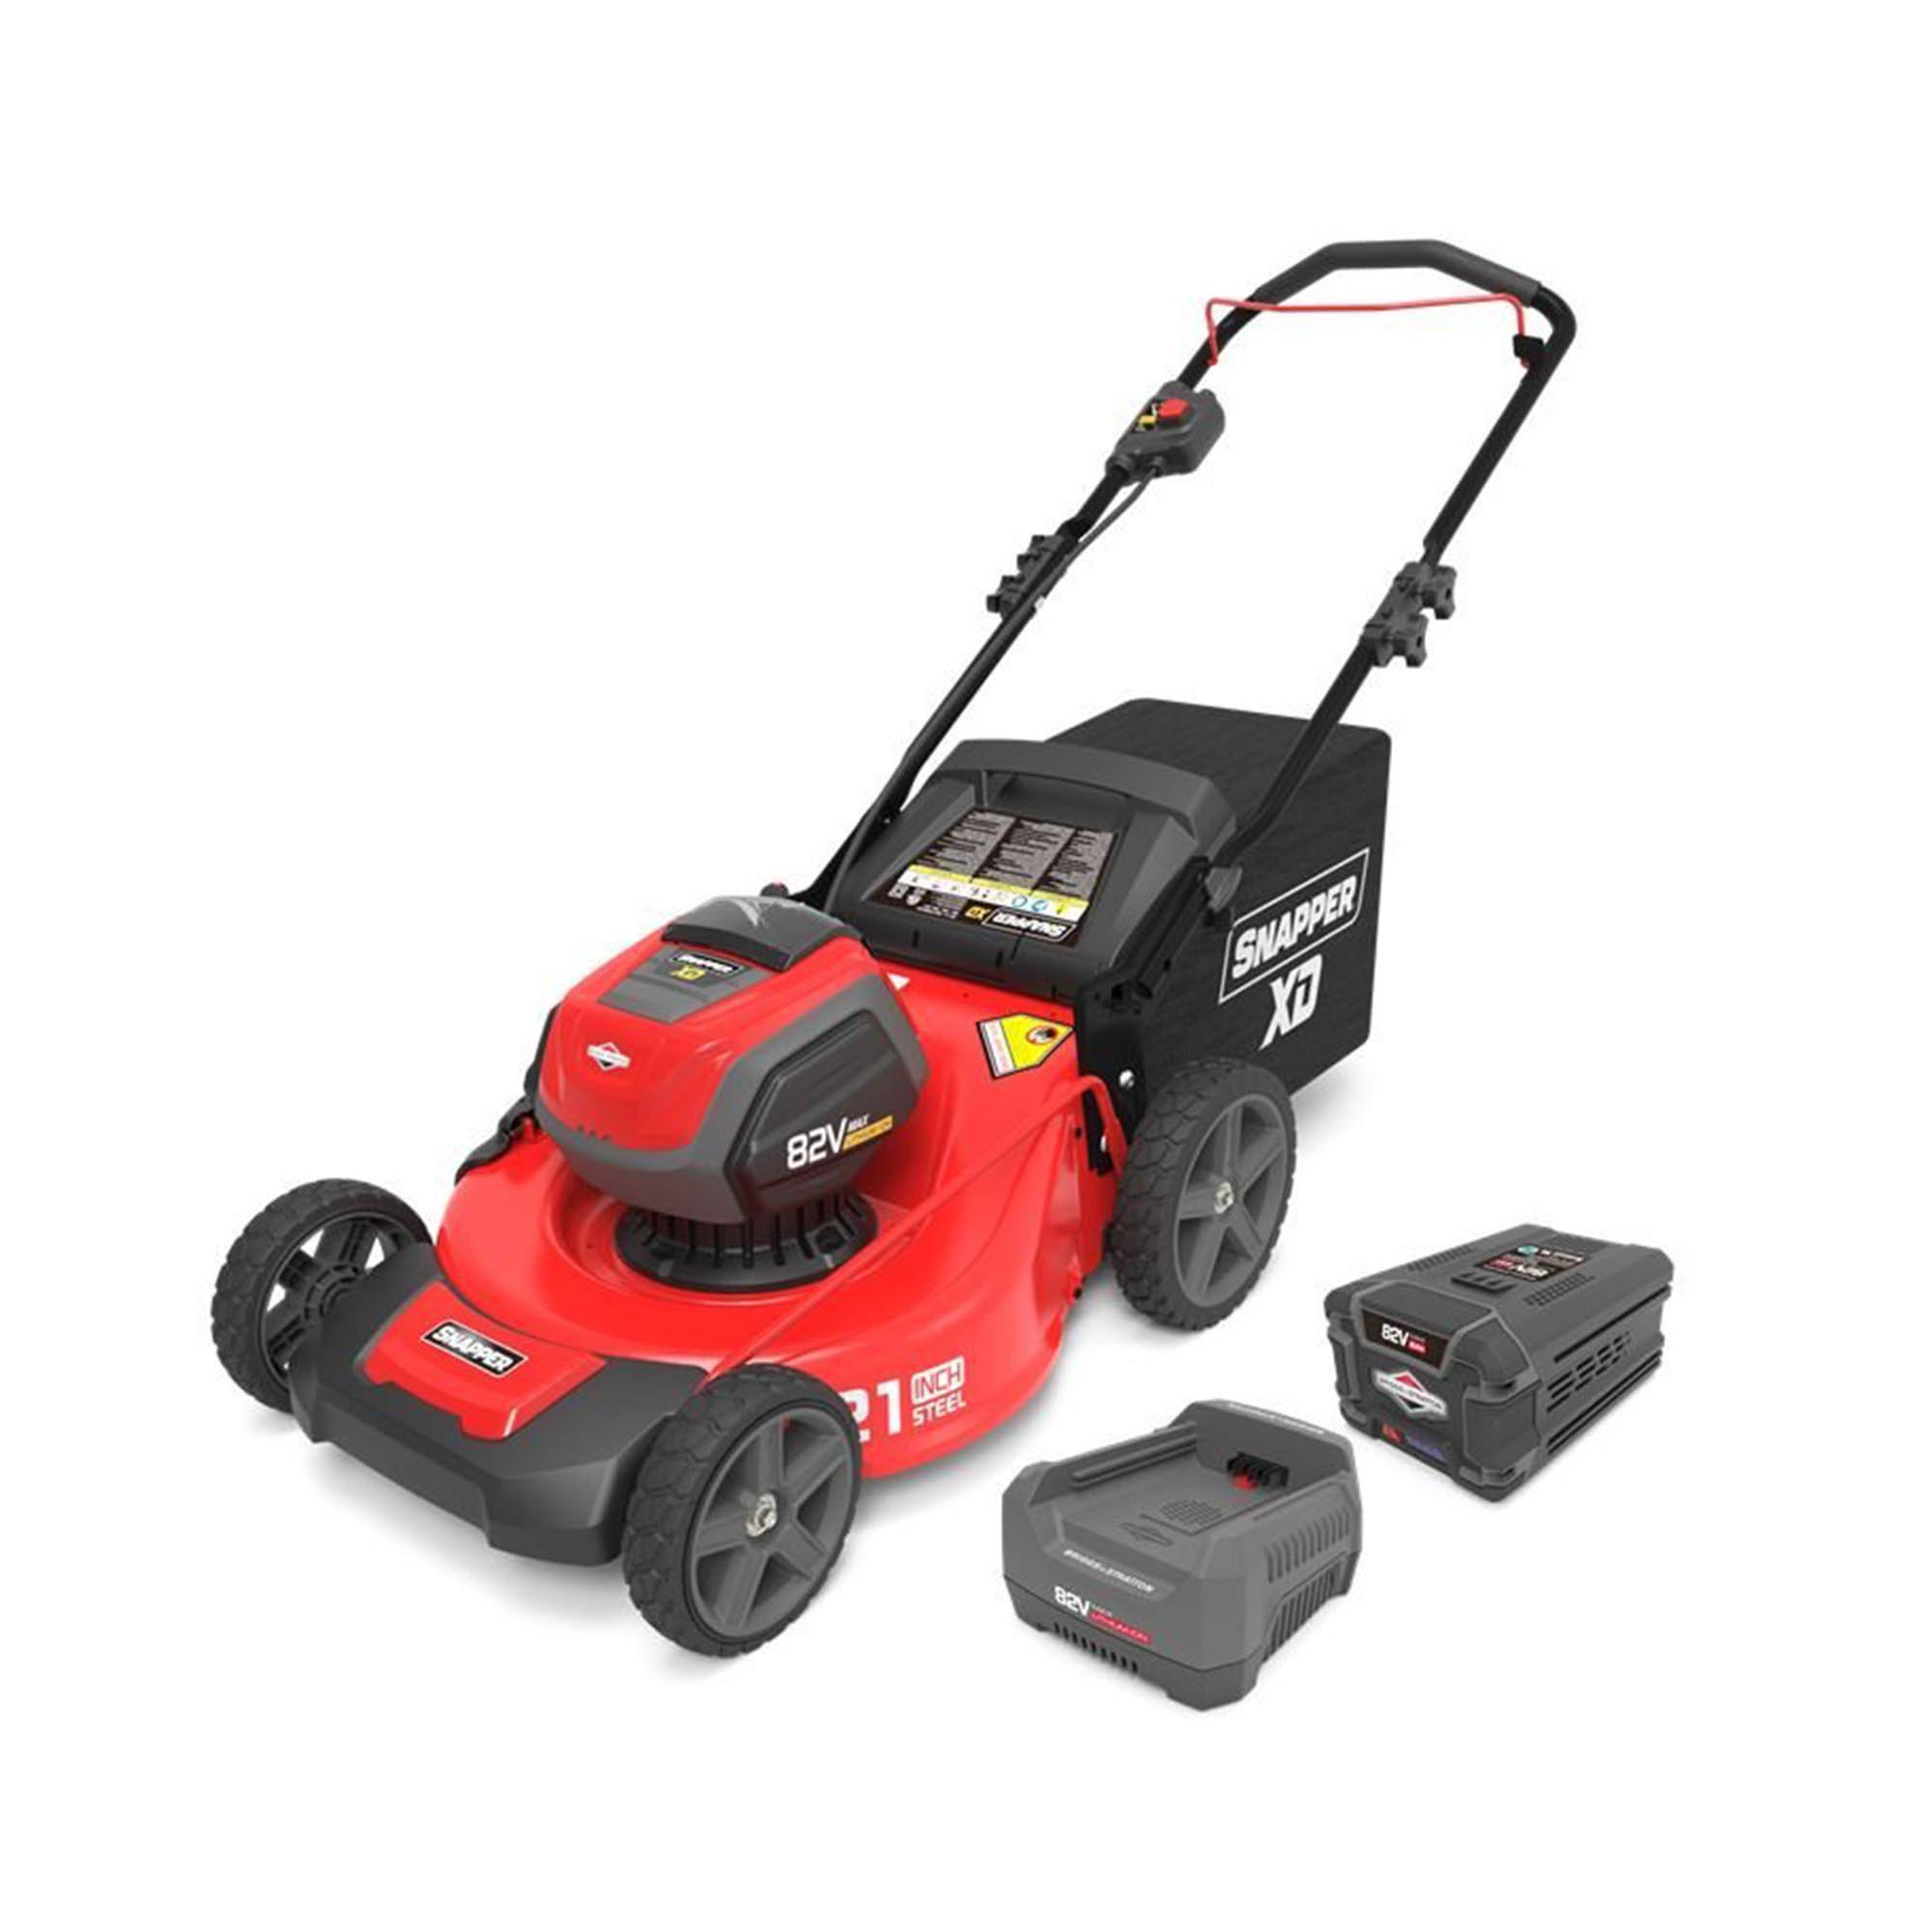 Snapper XD 82 Volt 21 Inch Cordless Lawn Mower w/ Battery & Charger | 1687884